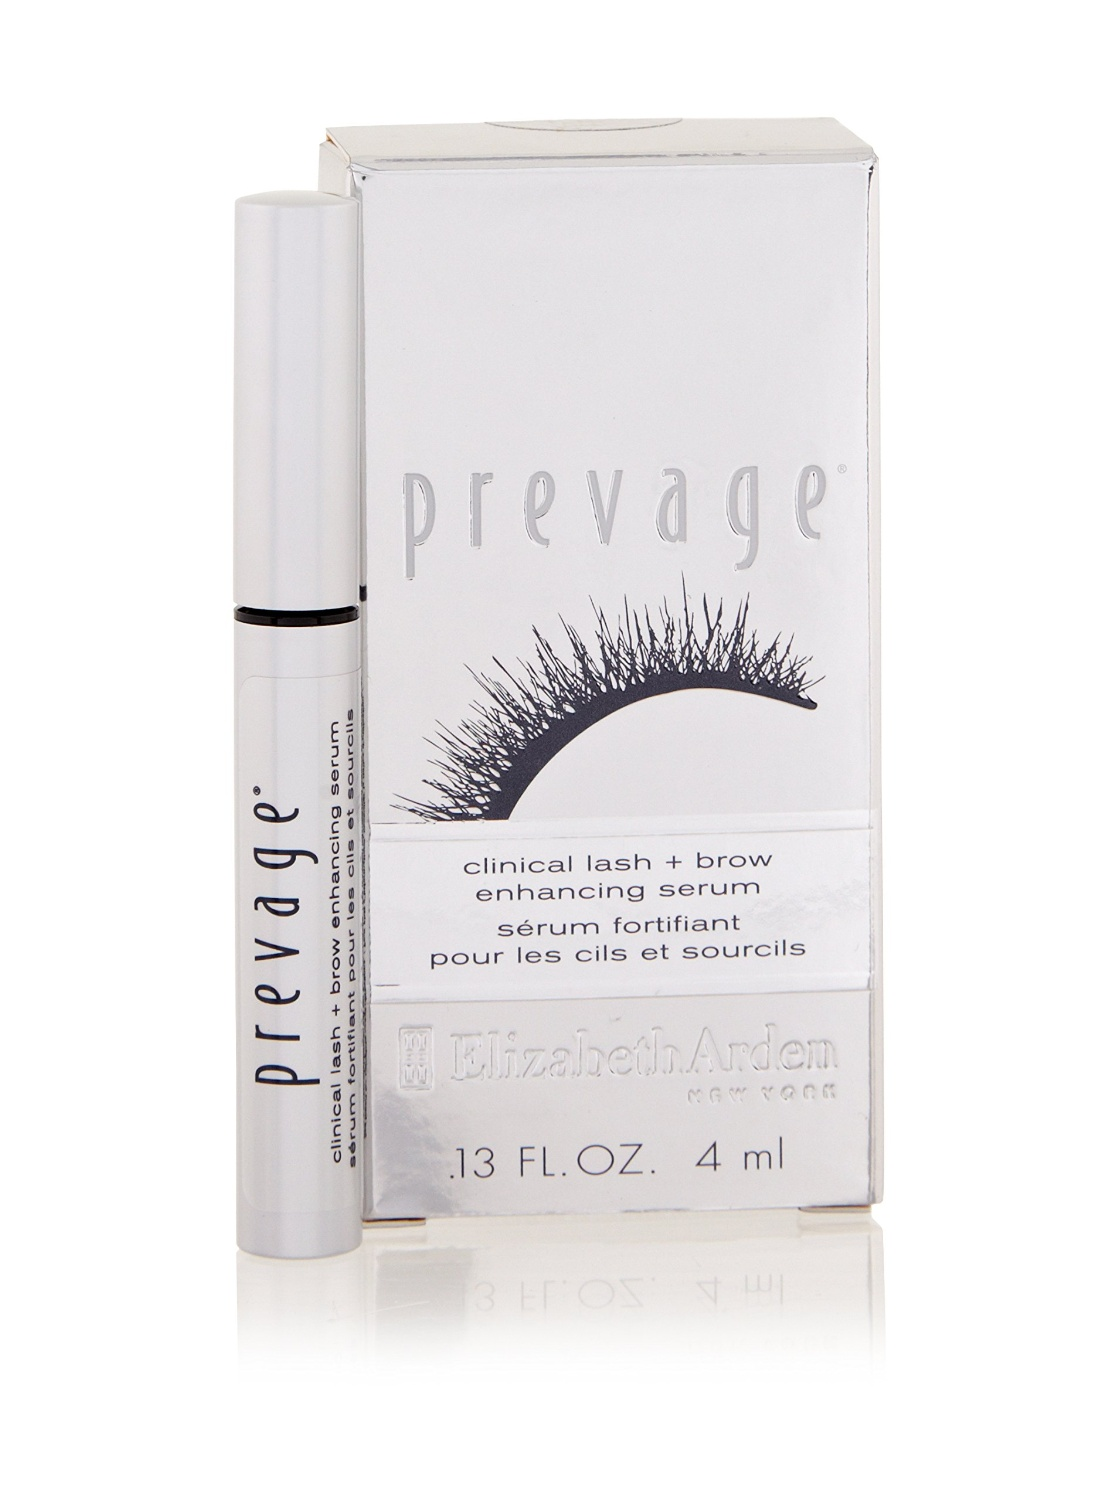 ELIZABETH ARDEN PREVAGE CLINICAL LASH ENHANCING SERUM 4 ML